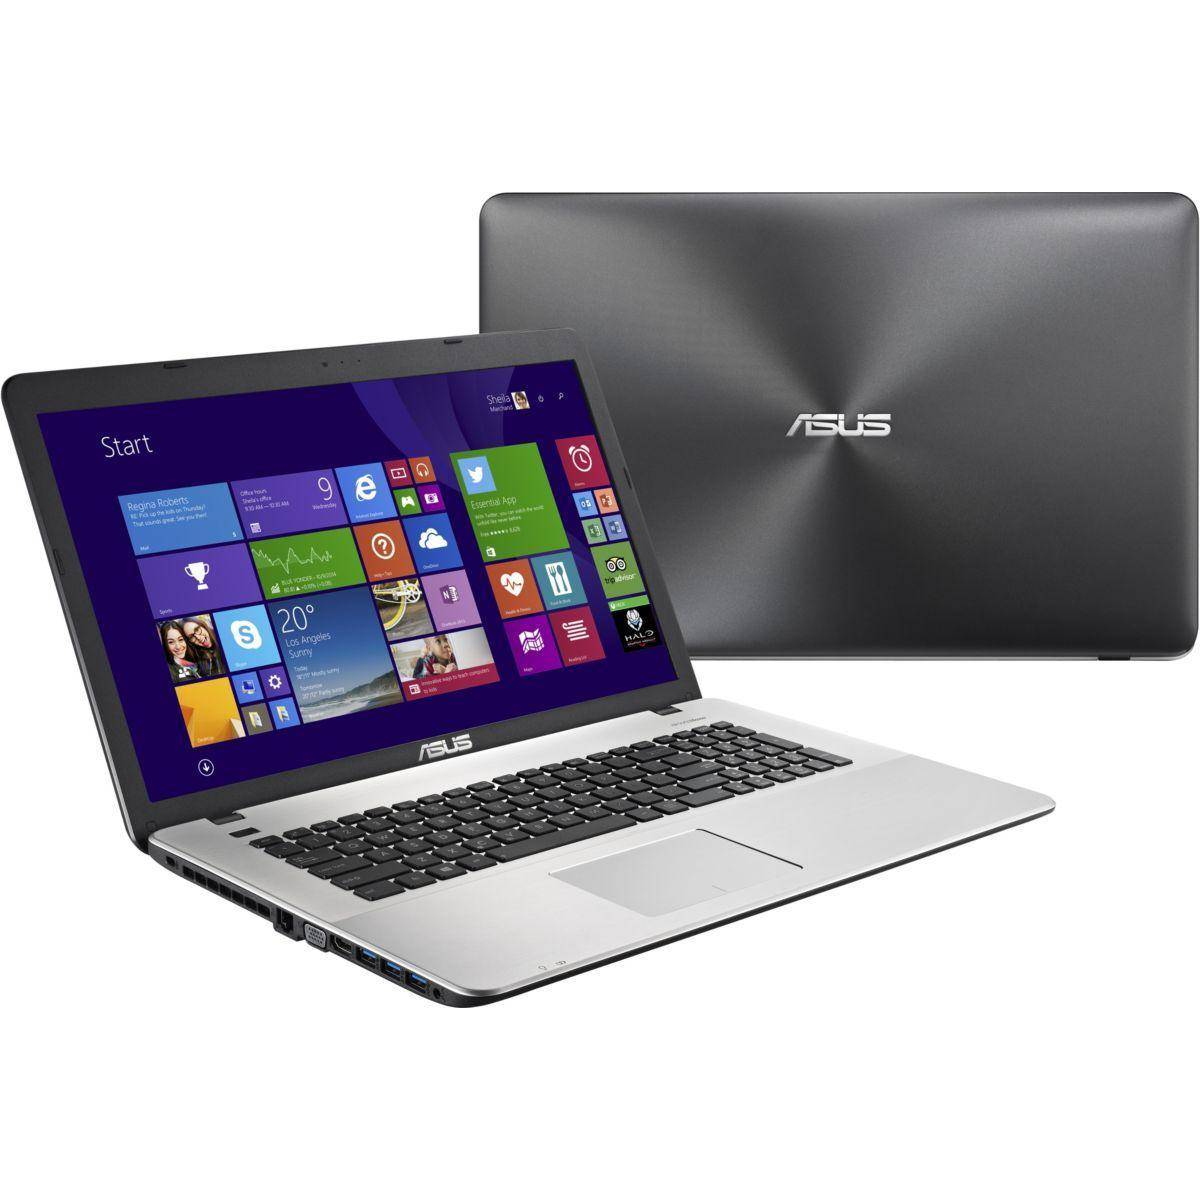 Asus R752LX-TY056H 17 Core I5-5200U 2.2 GHz HDD 1 To RAM 8 Go